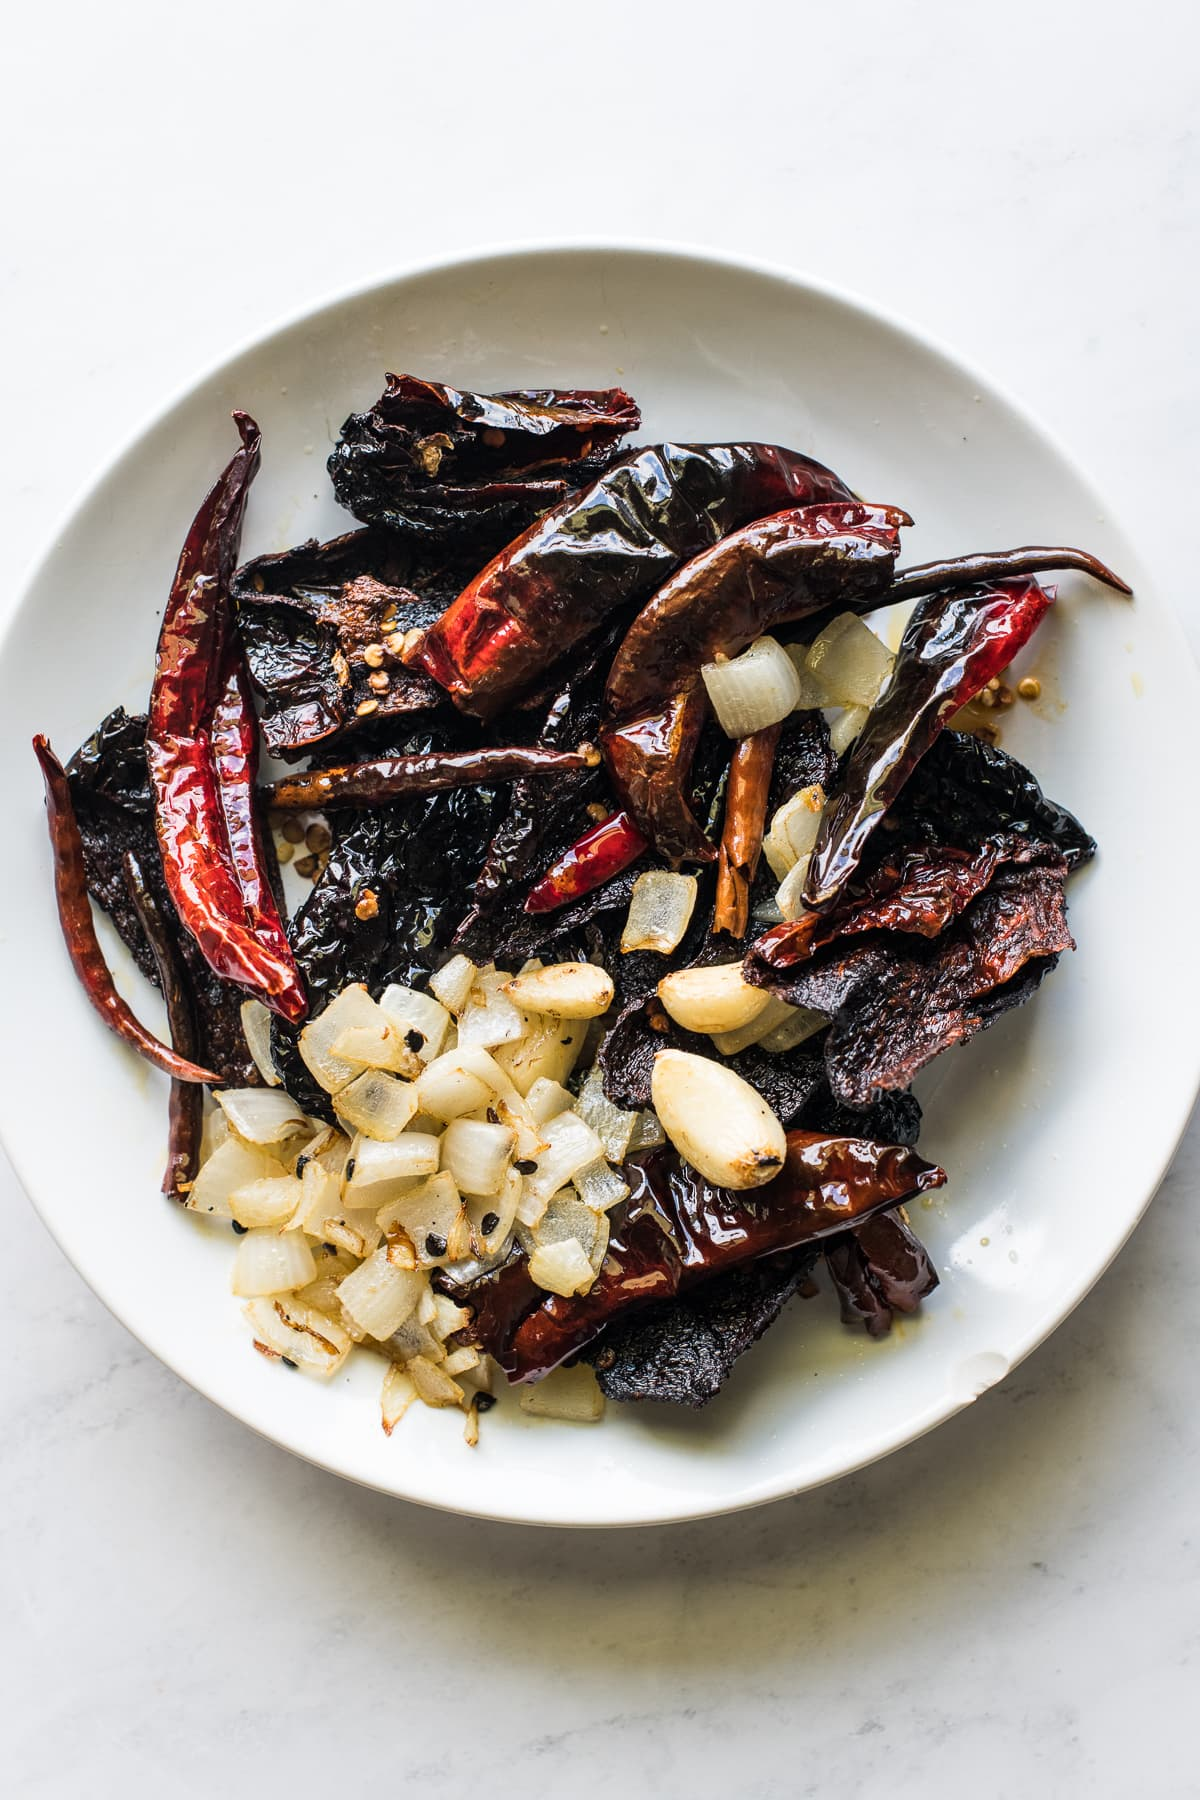 A plate full of sauteed chiles, onions, and garlic for salsa macha.